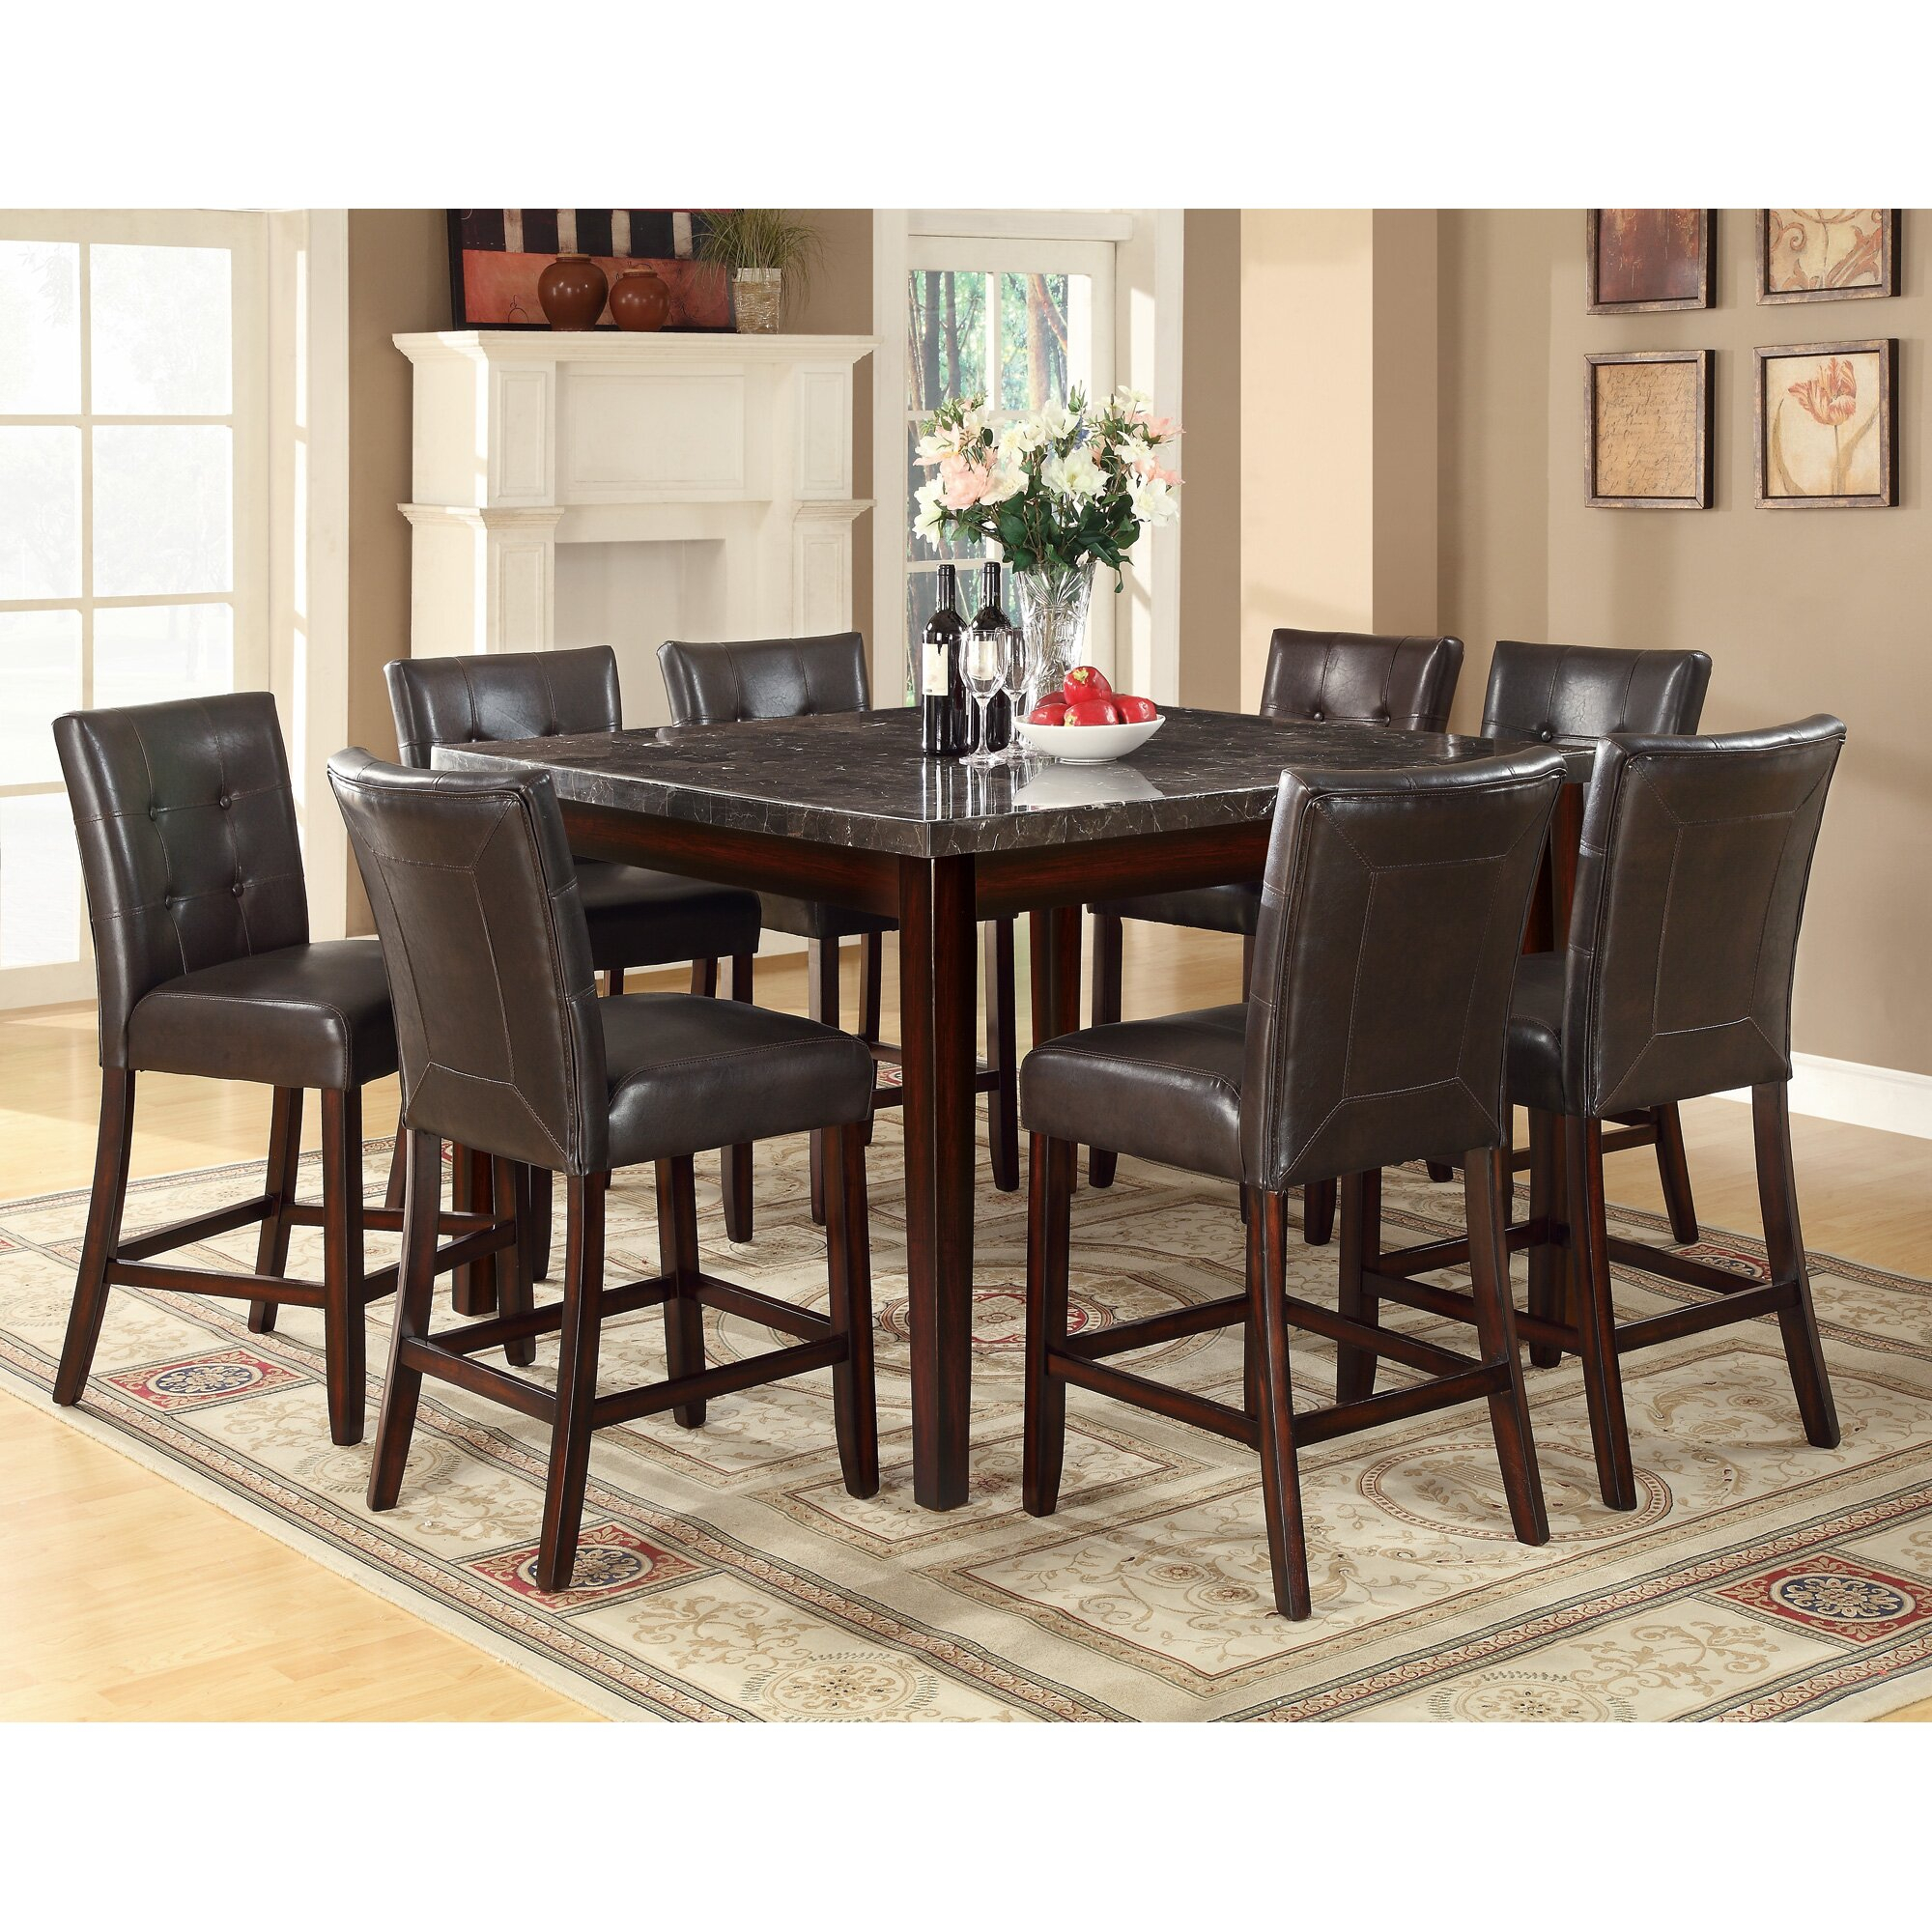 Alcott Hill Cincinnati Counter Height Dining Table For 2018 Andrenique Bar Height Dining Tables (View 7 of 15)